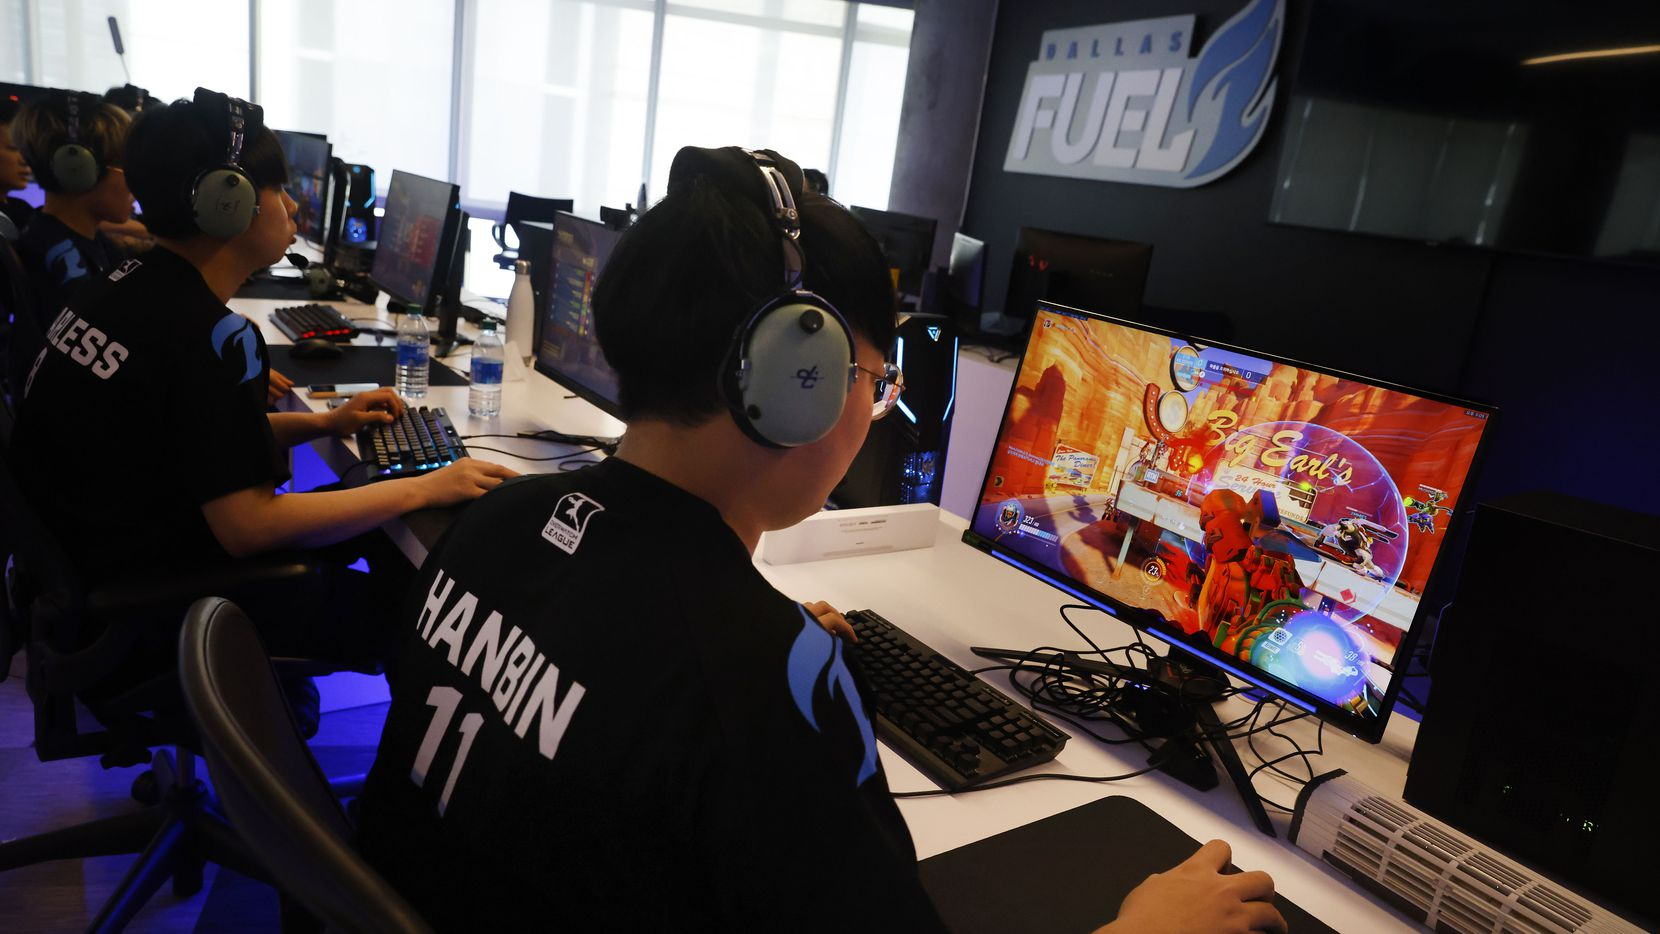 Dallas Fuel Overwatch League player Hanbeen 'Hanbin' Choi practices with his teammates ahead of their season opener against Houston at Envy Gaming Headquarters in Dallas, Monday, March 29, 2021. (Tom Fox/The Dallas Morning News)